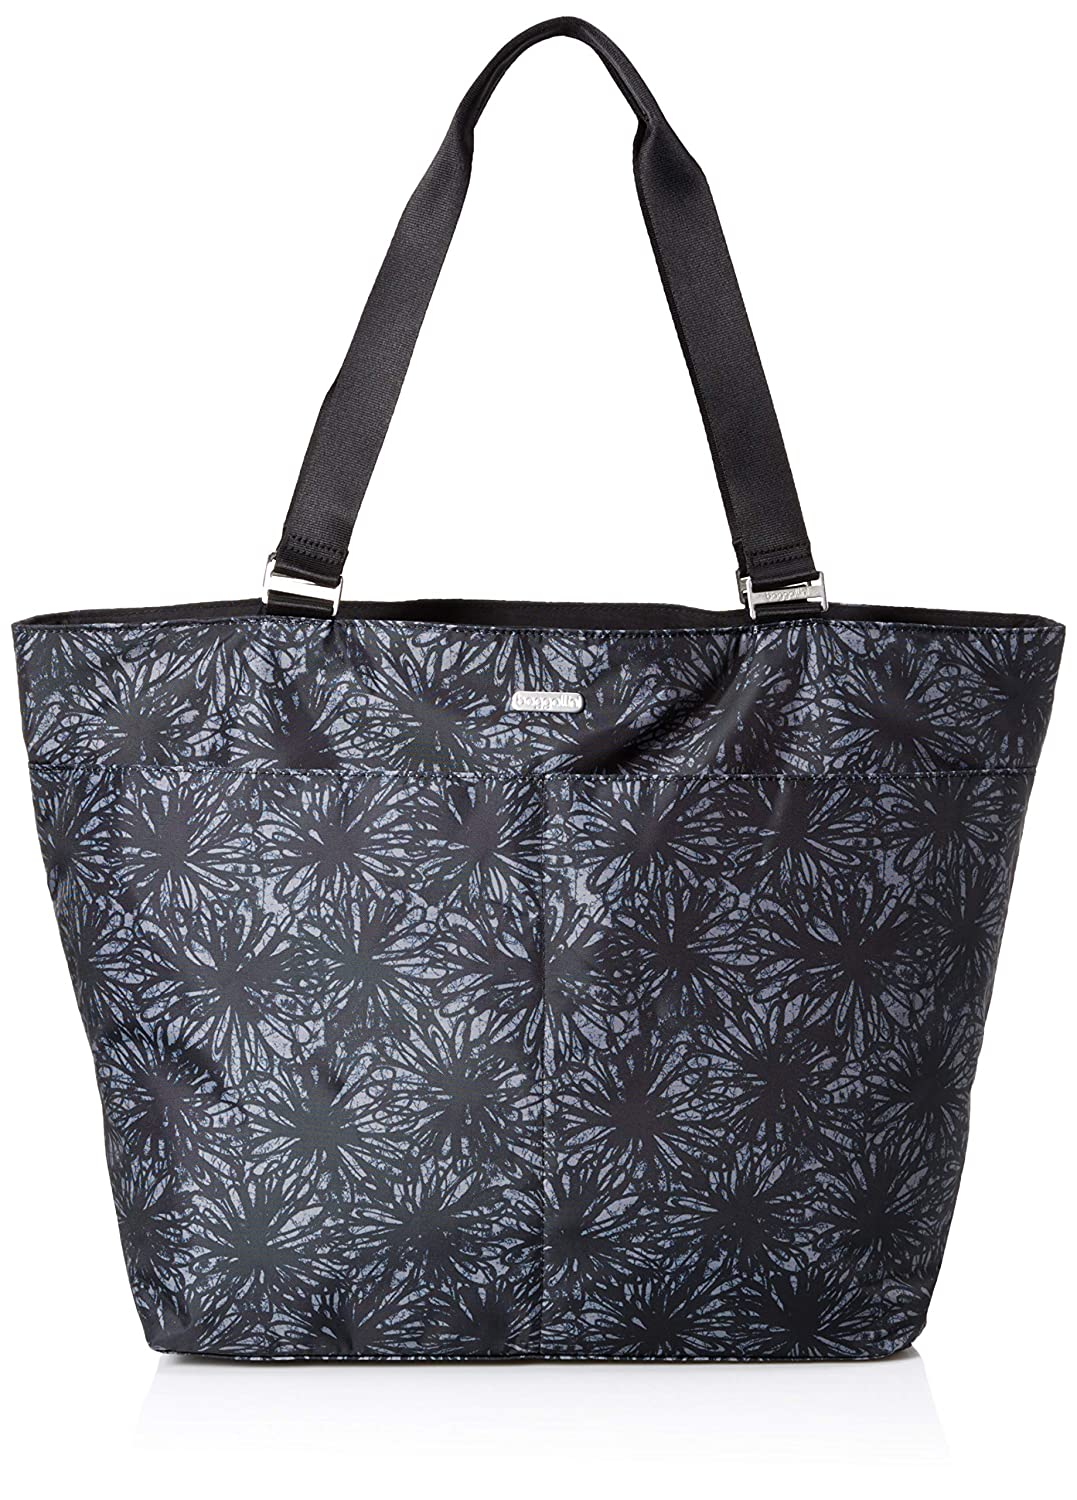 Baggallini ユニセックスアダルト One Size Onyx Floral B07K39NJTF